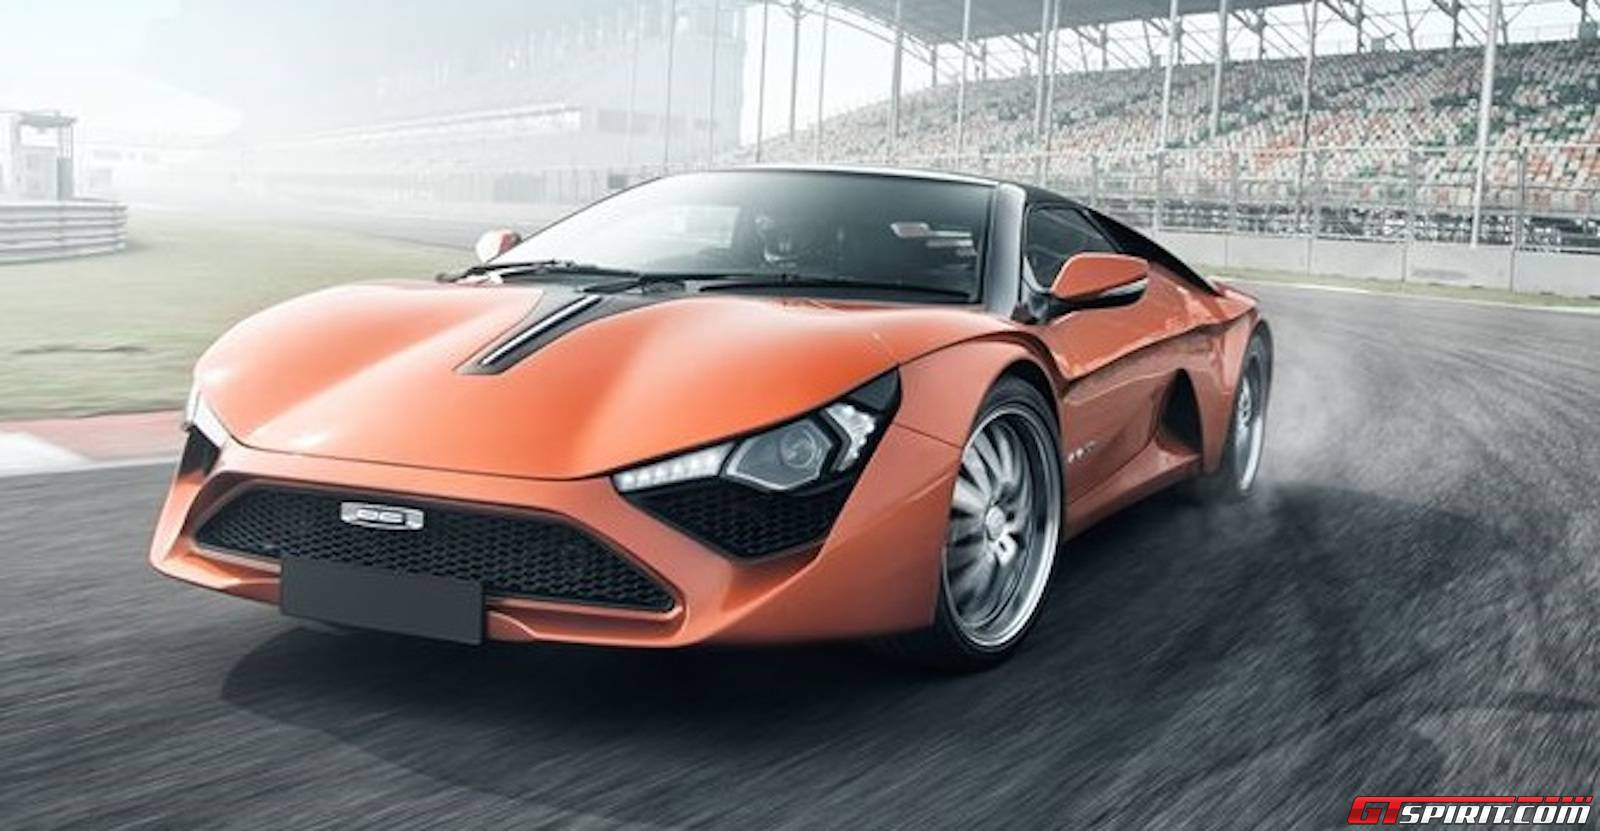 Dc Avanti India S First Sportscar Likely To Be Launched